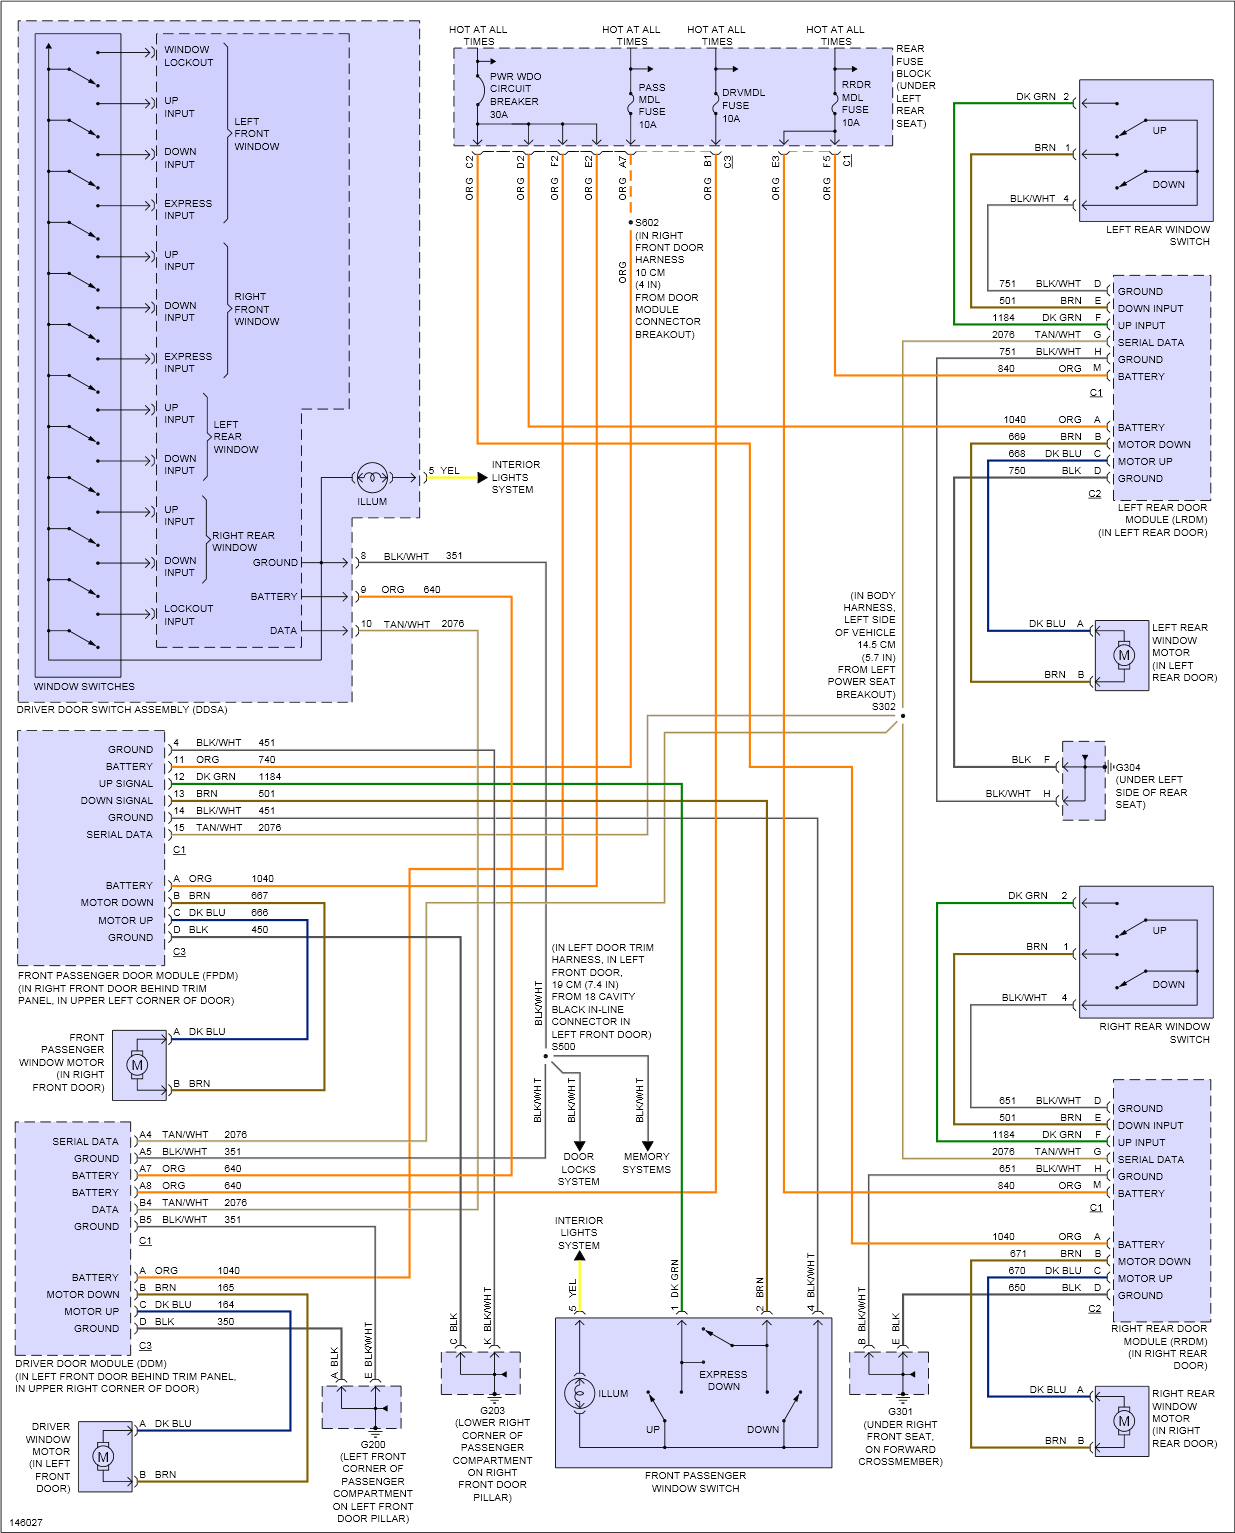 Diagram 2000 Buick Lesabre Power Window Wiring Diagram Full Version Hd Quality Wiring Diagram Foodwebdiagraml Ripettapalace It